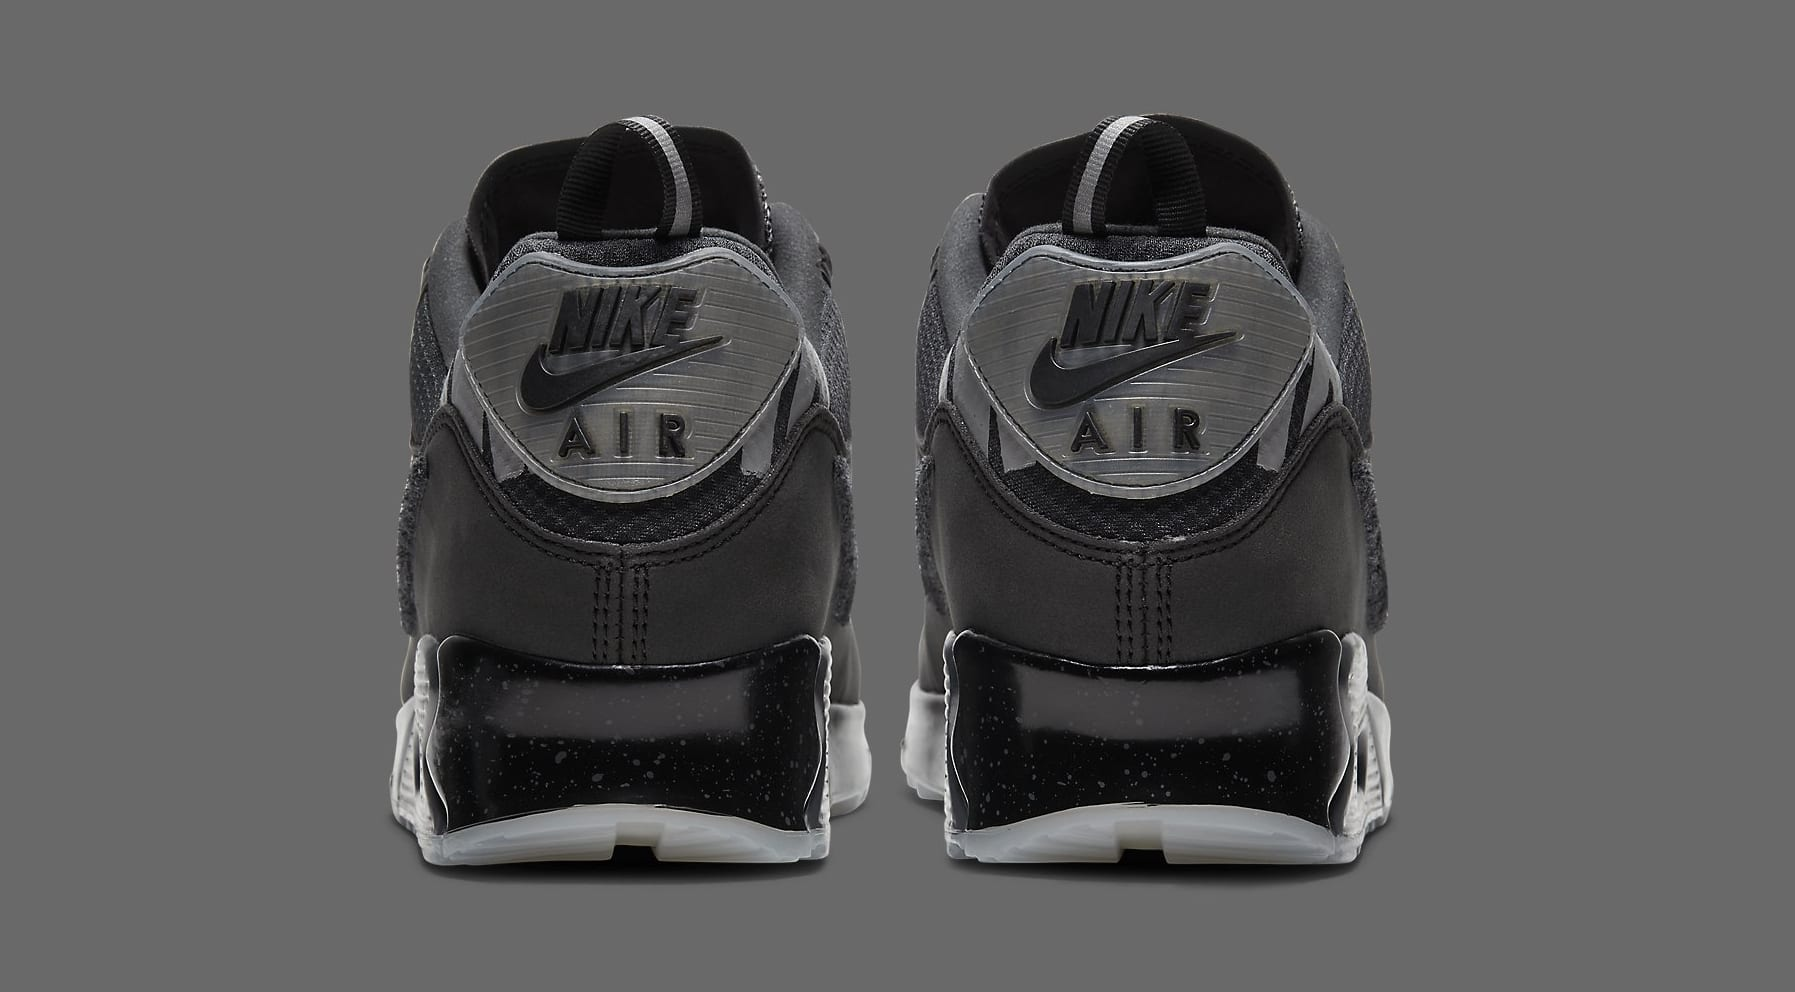 undefeated-nike-air-max-90-black-cq2289-002-heel